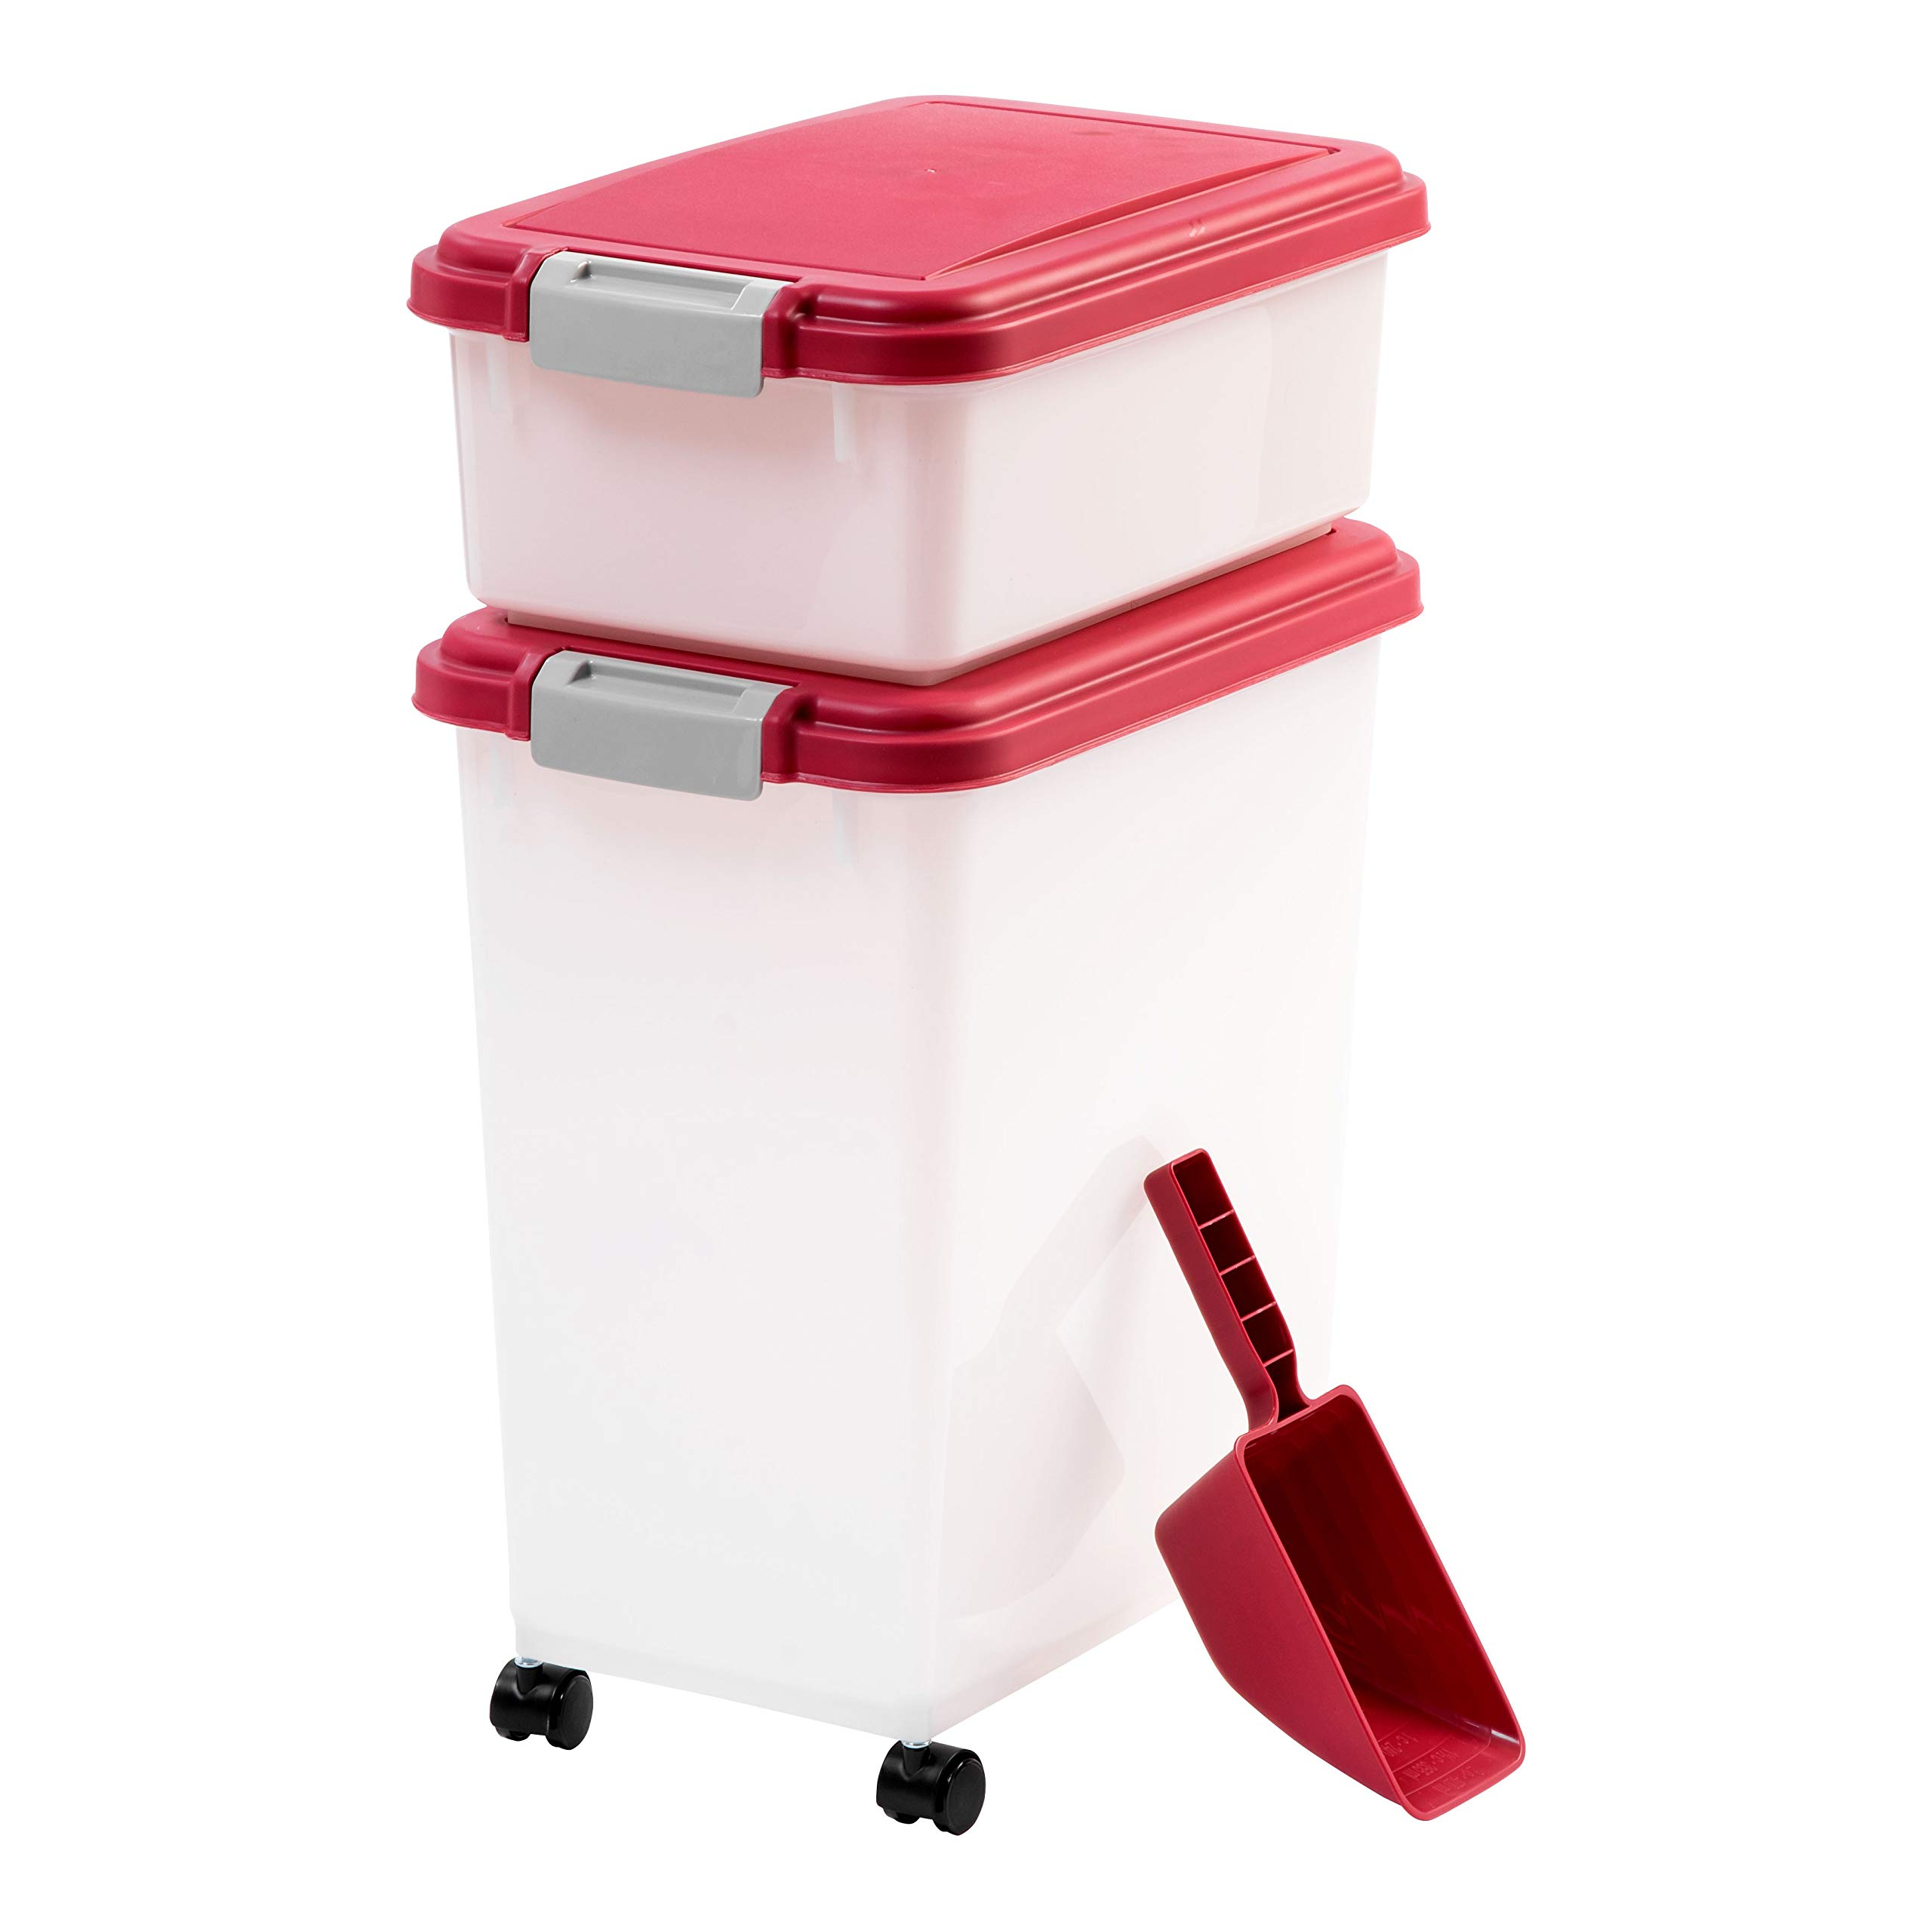 IRIS 3Piece Airtight Pet Food Container Combo, Red by IRIS USA, Inc.